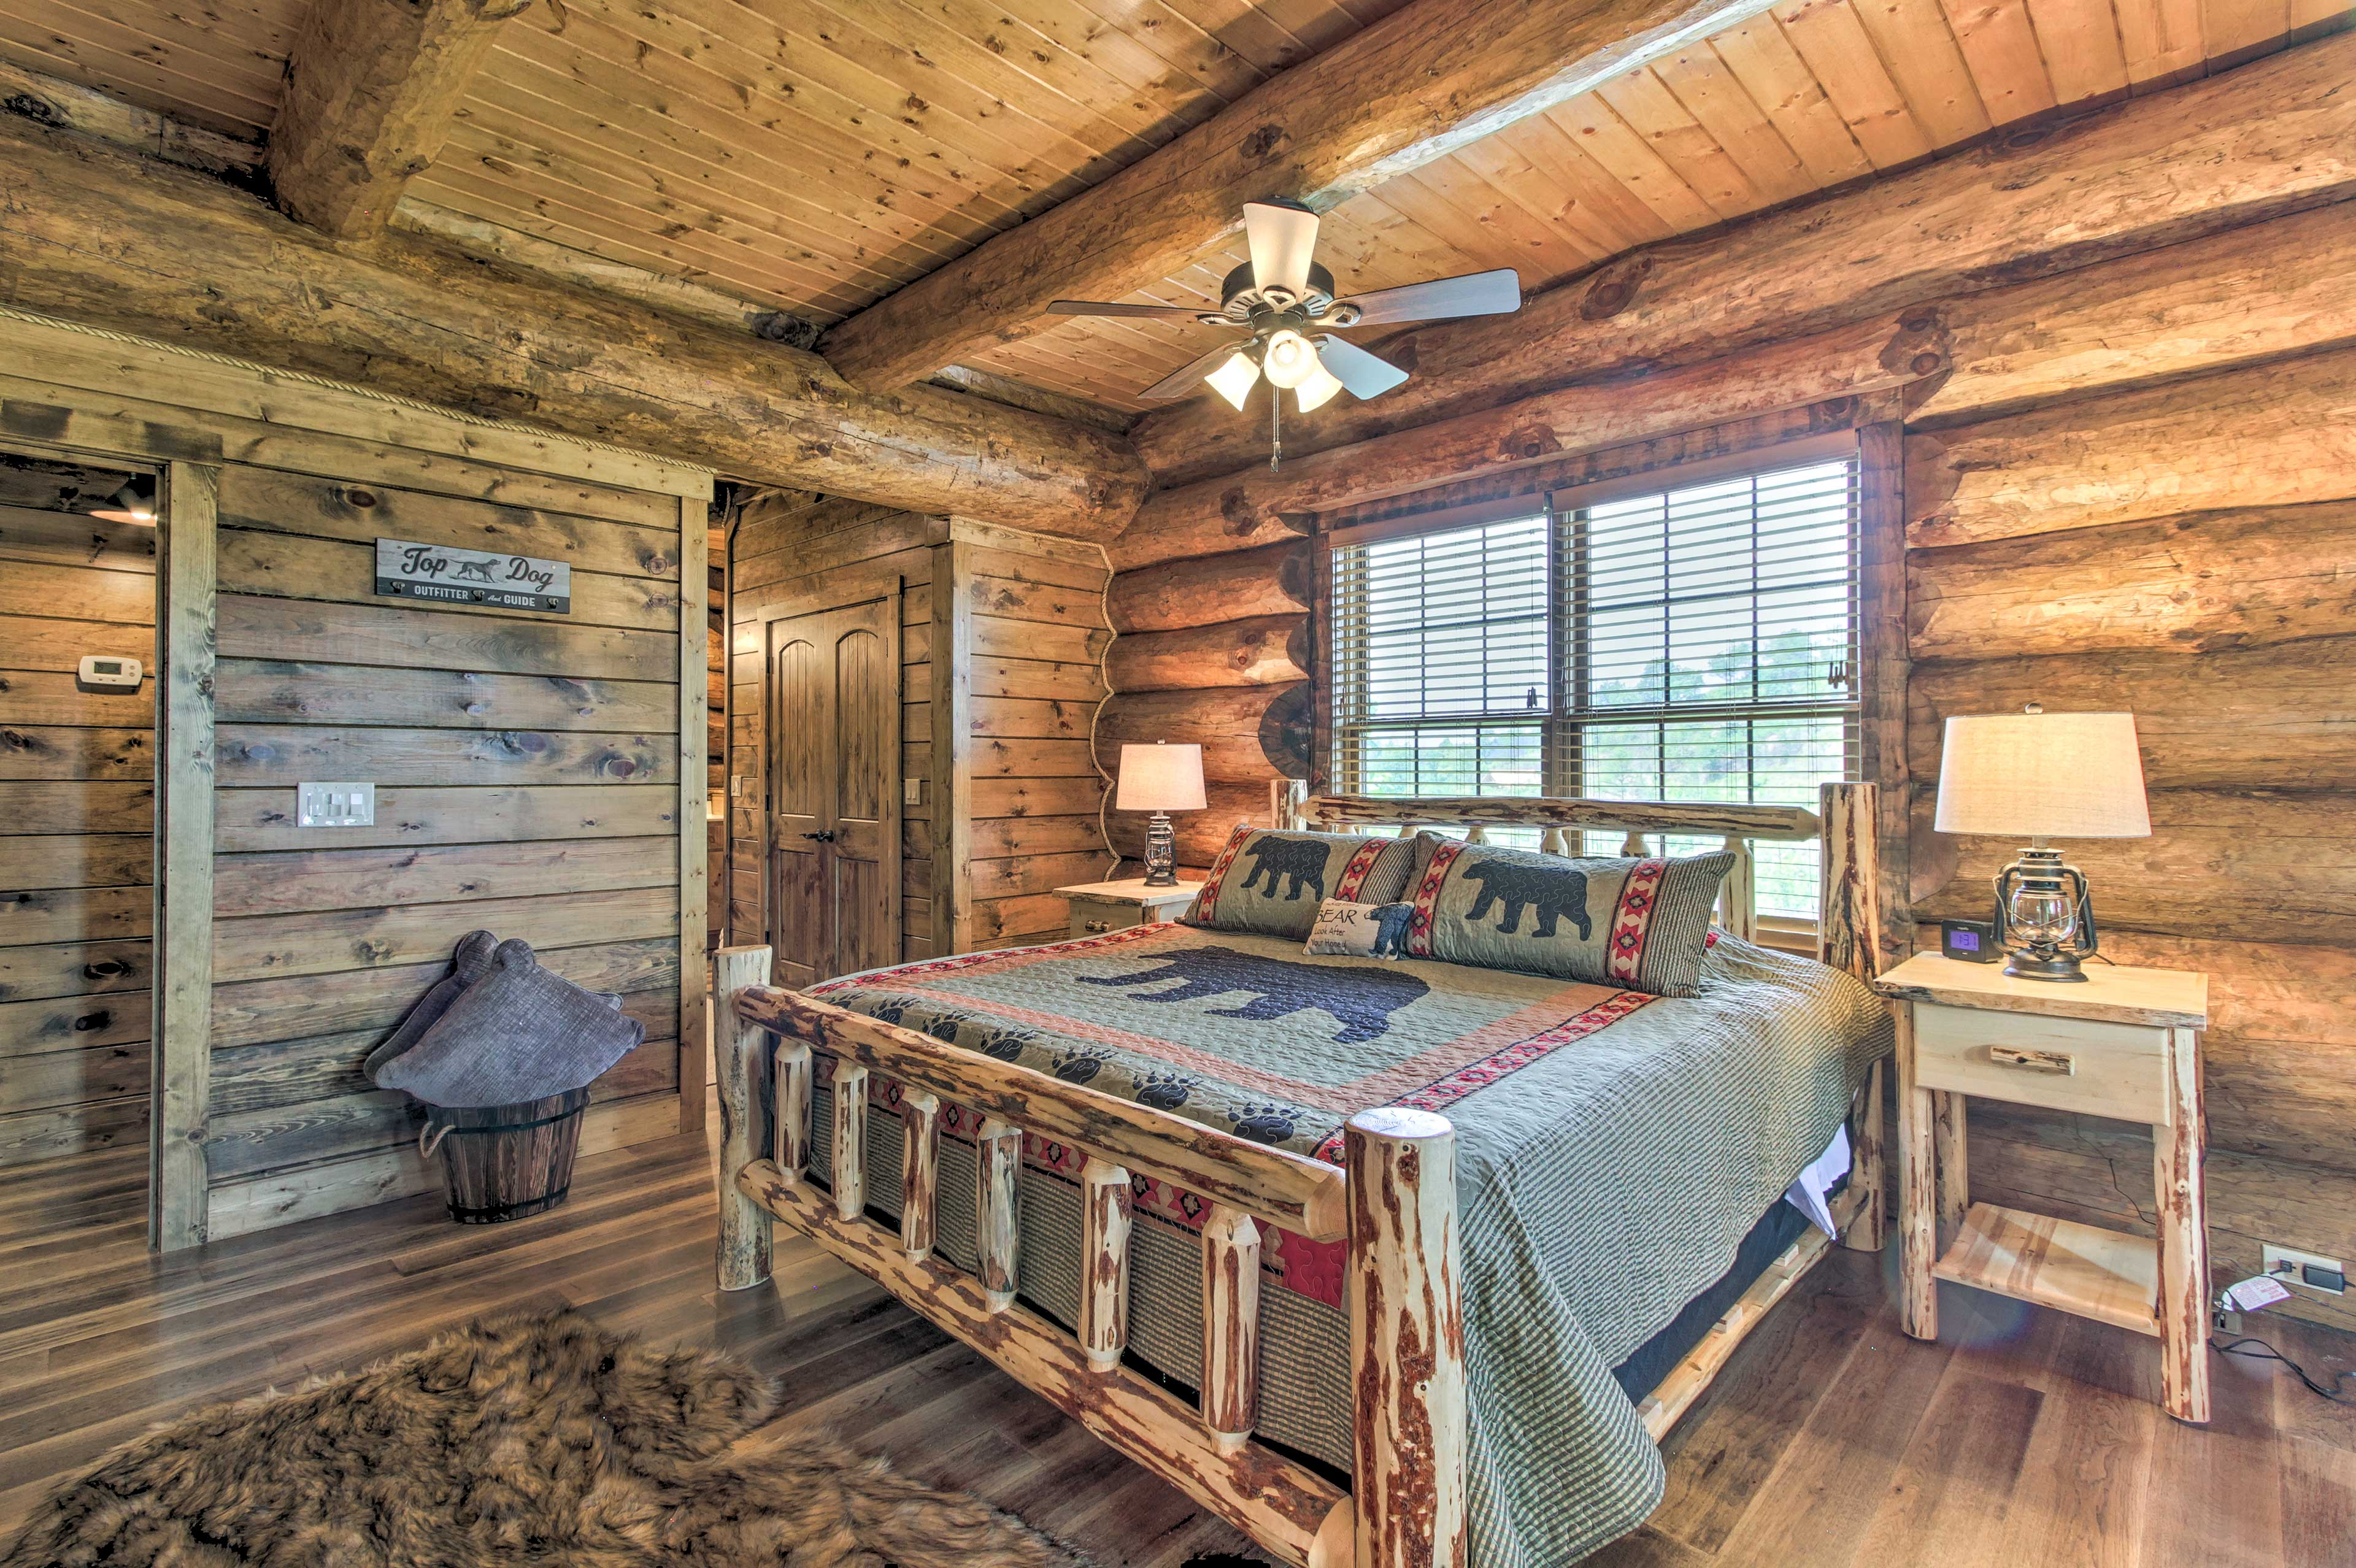 Couples will love curling up here for a peaceful night of rest.